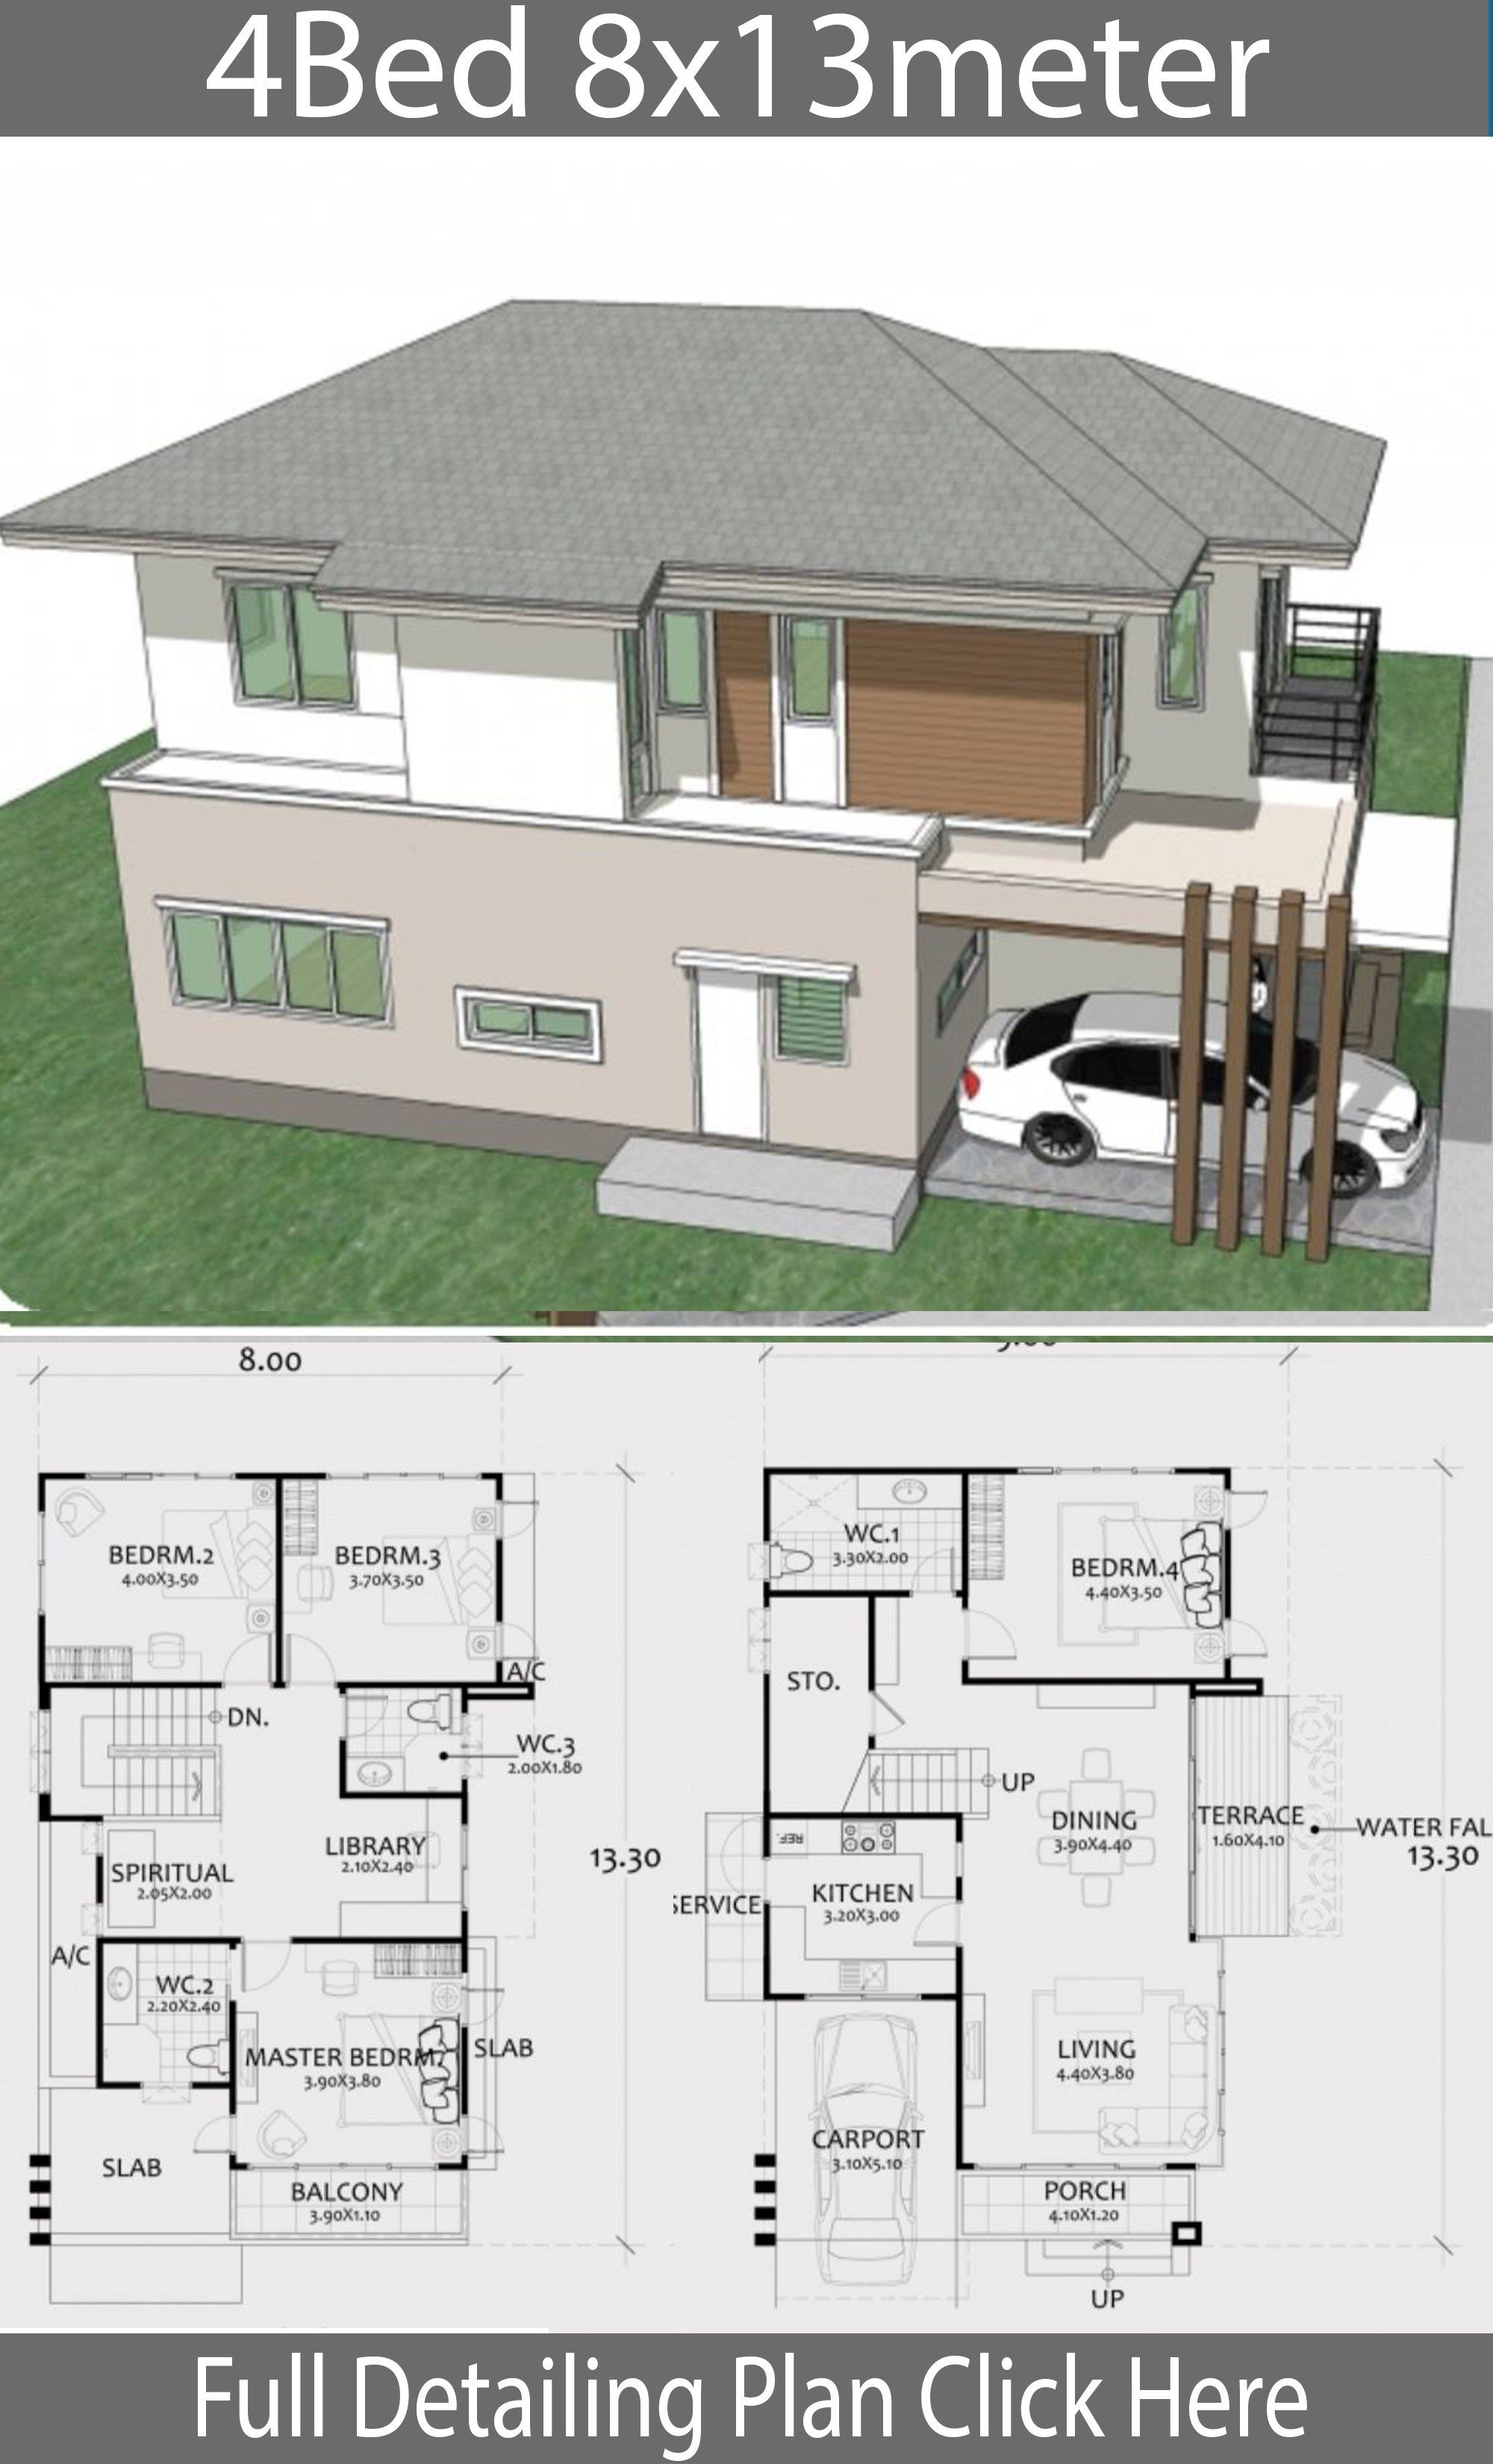 Home Design Plan 8x13m With 4 Bedrooms Home Design With Plan Home Design Plan Home Building Design House Layout Plans